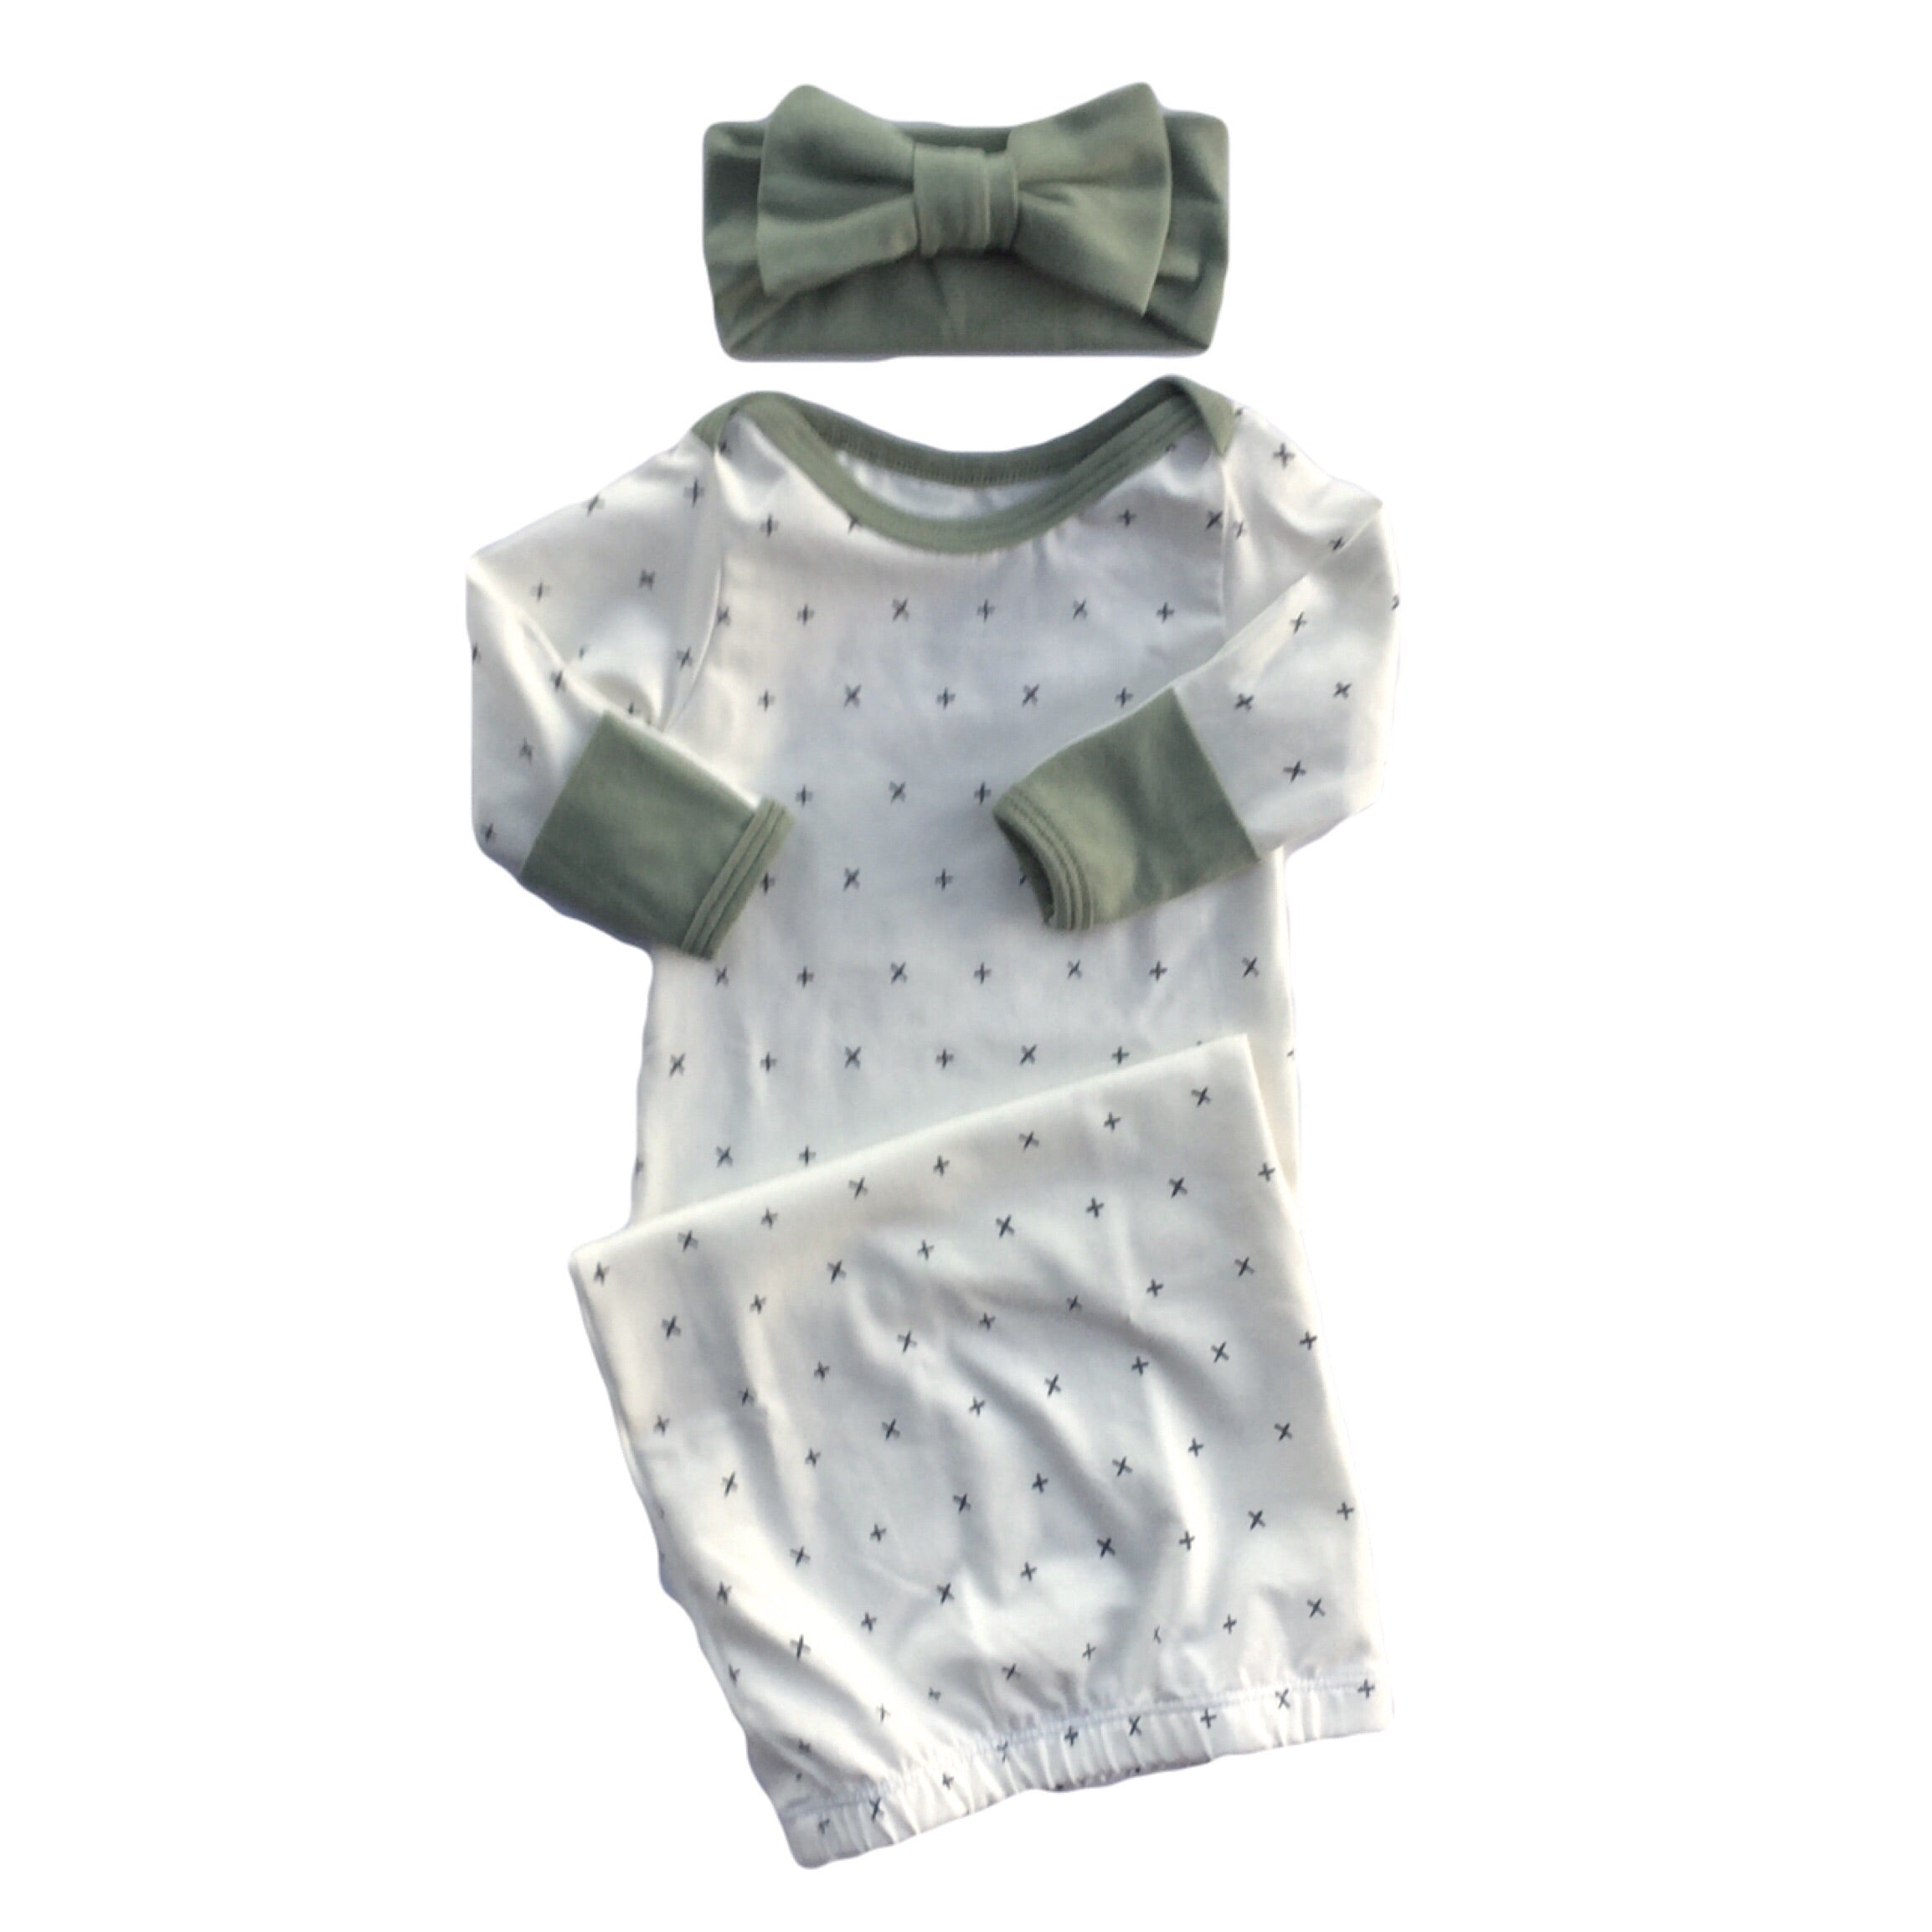 Baby Gowns   Oh So Vera